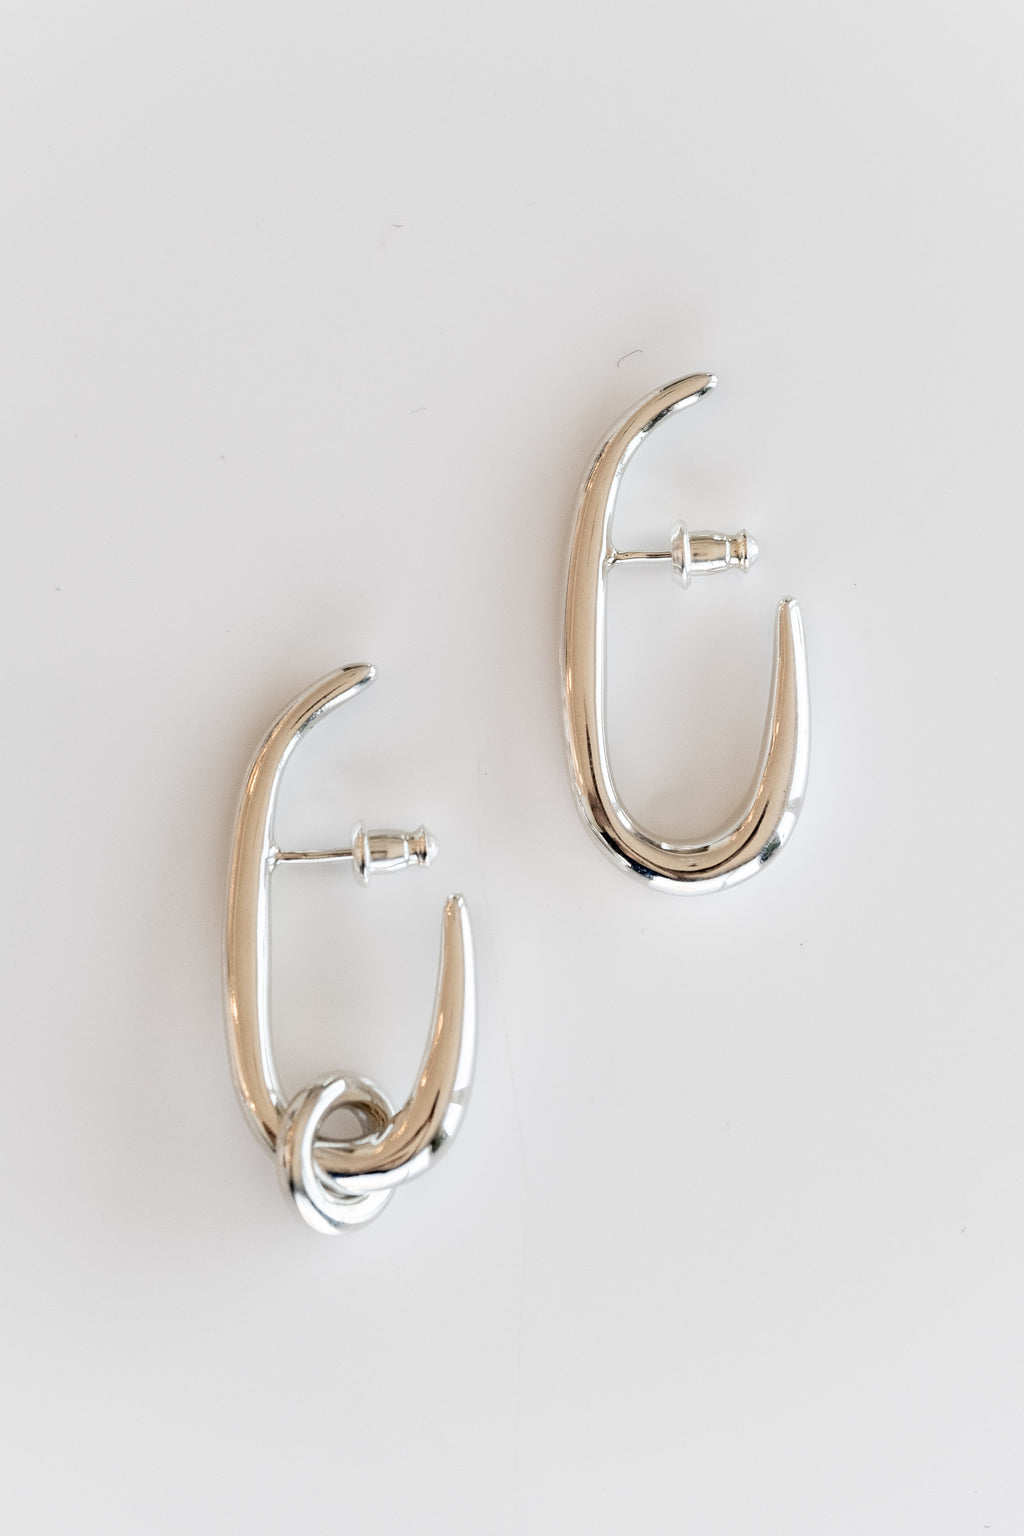 OVAL HOOPS NO. 2